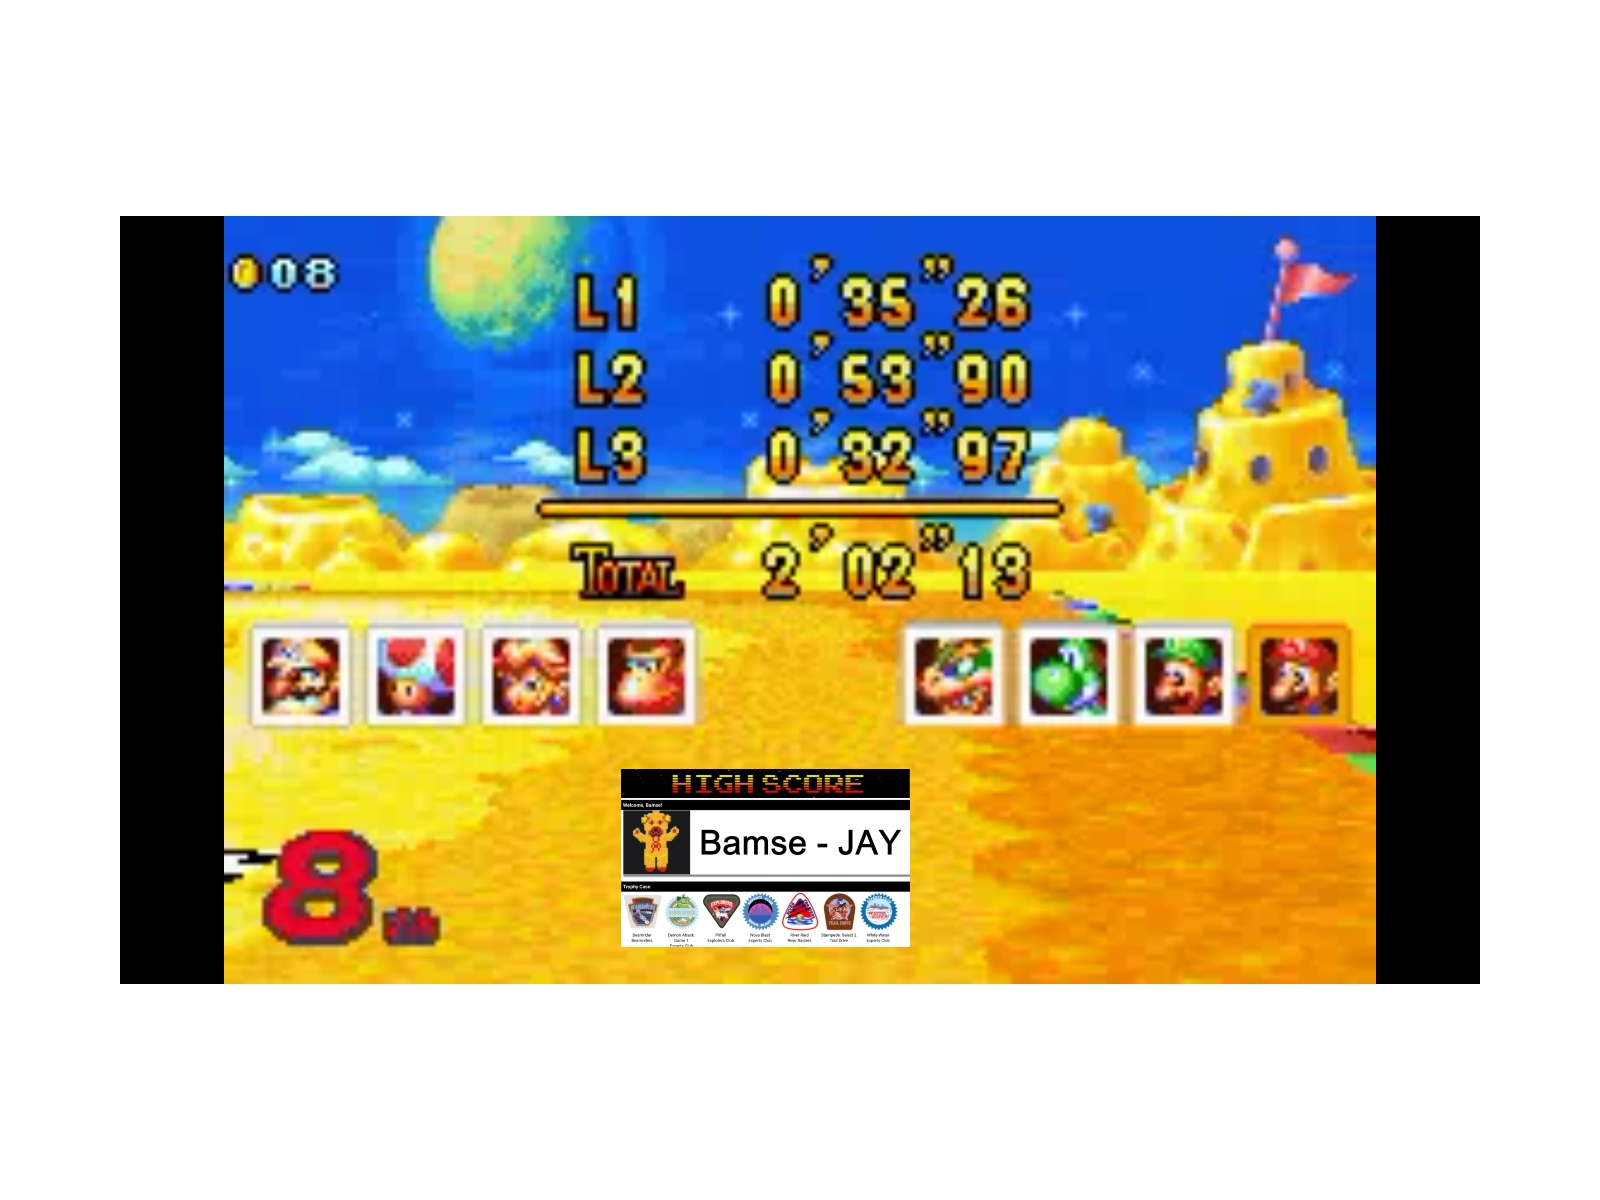 Bamse: Mario Kart Super Circuit: Cheese Land [150cc] [Lap Time] (GBA Emulated) 0:00:32.97 points on 2019-12-17 13:34:51